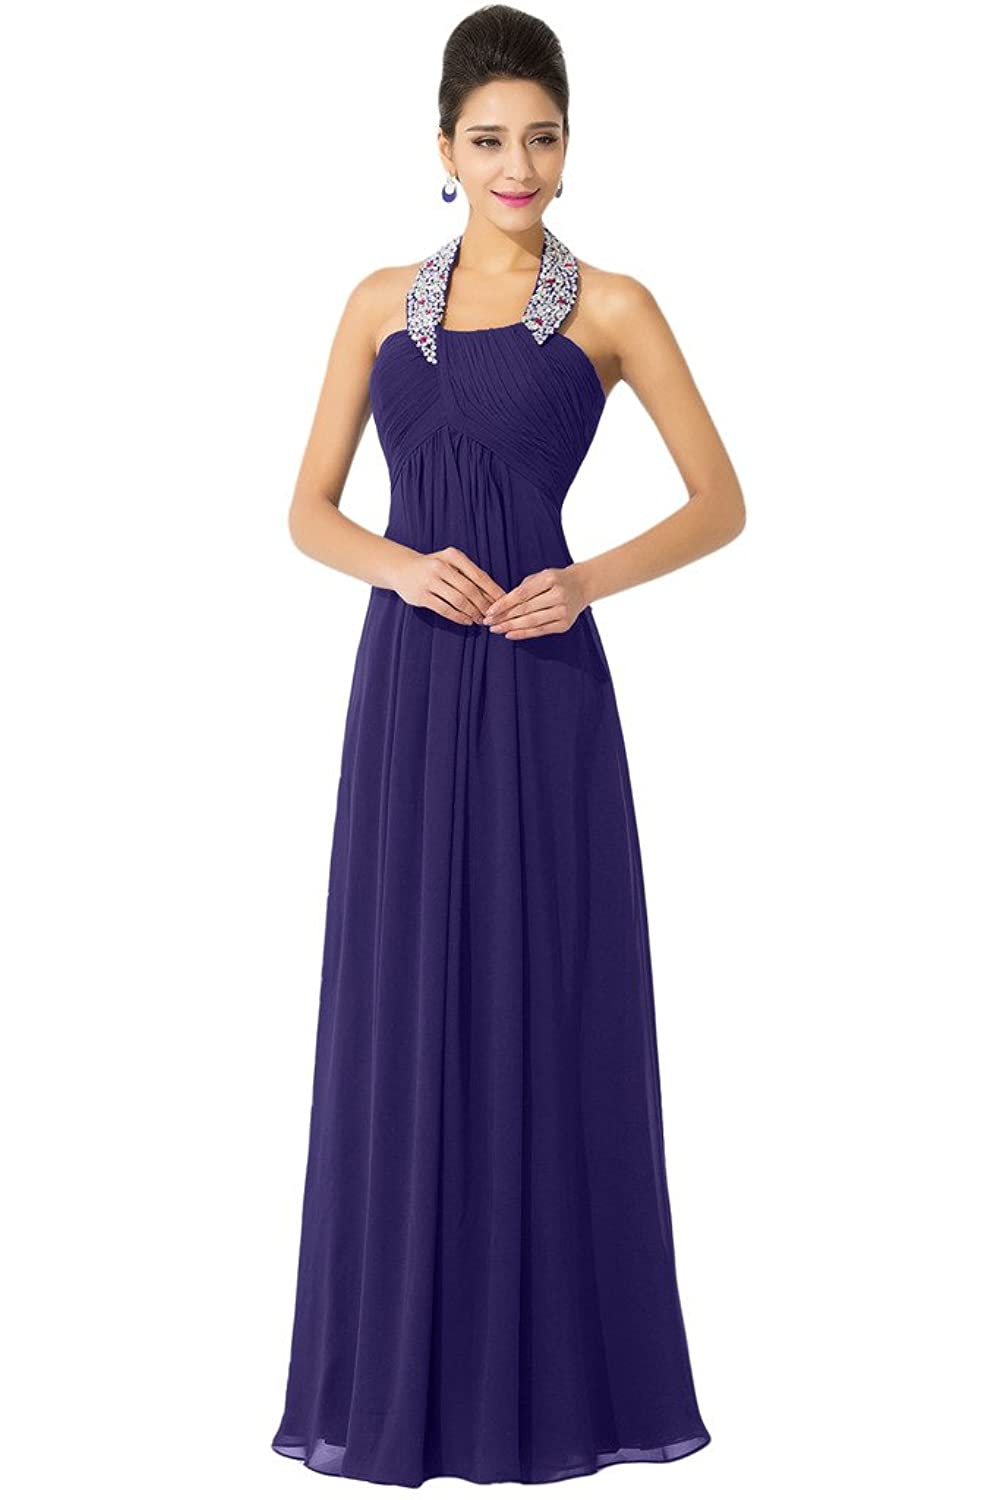 Sunvary Elegant Stylish Sweetheart Evening Dresses Prom Gowns with Open Back